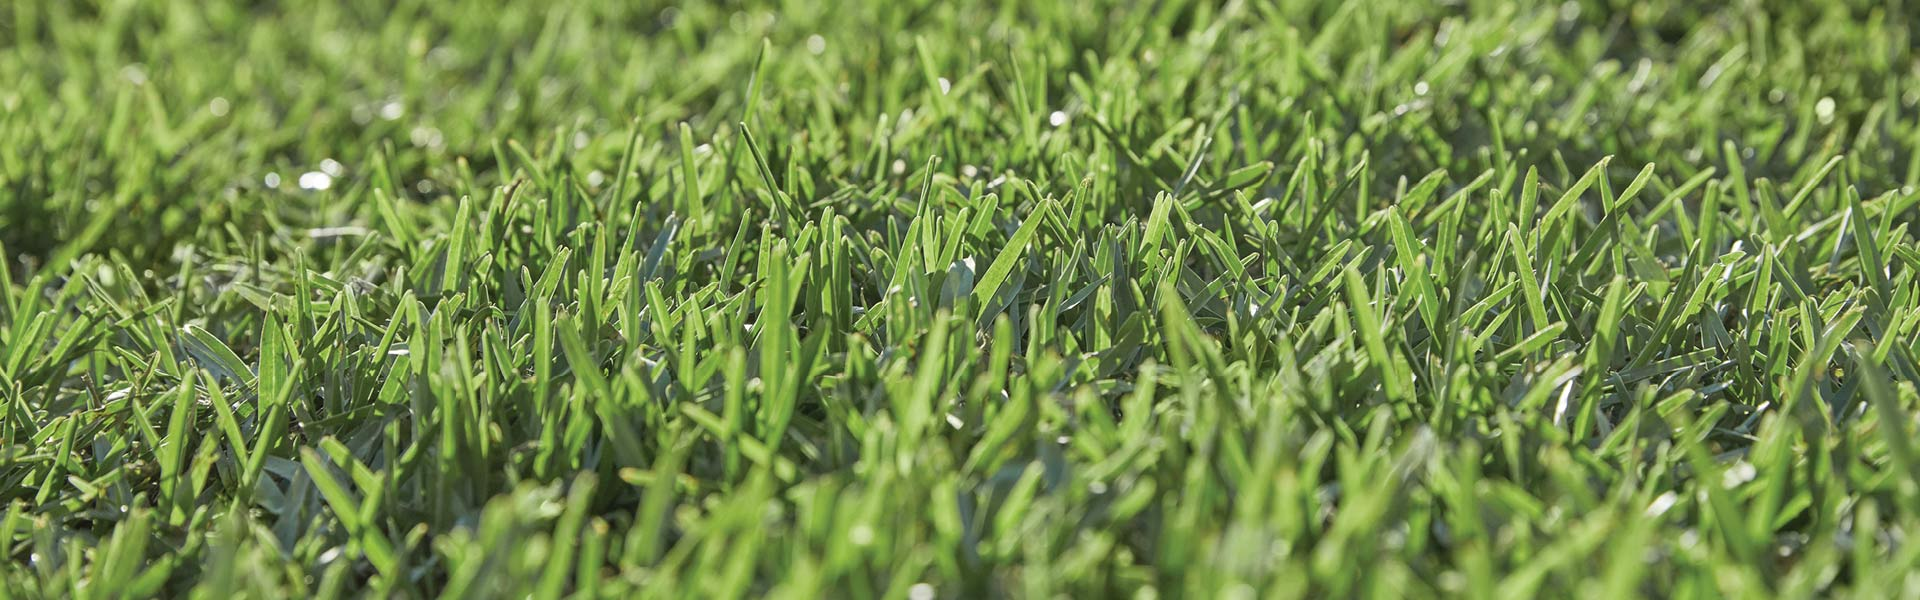 Ridding Summer Grass from your lawn?